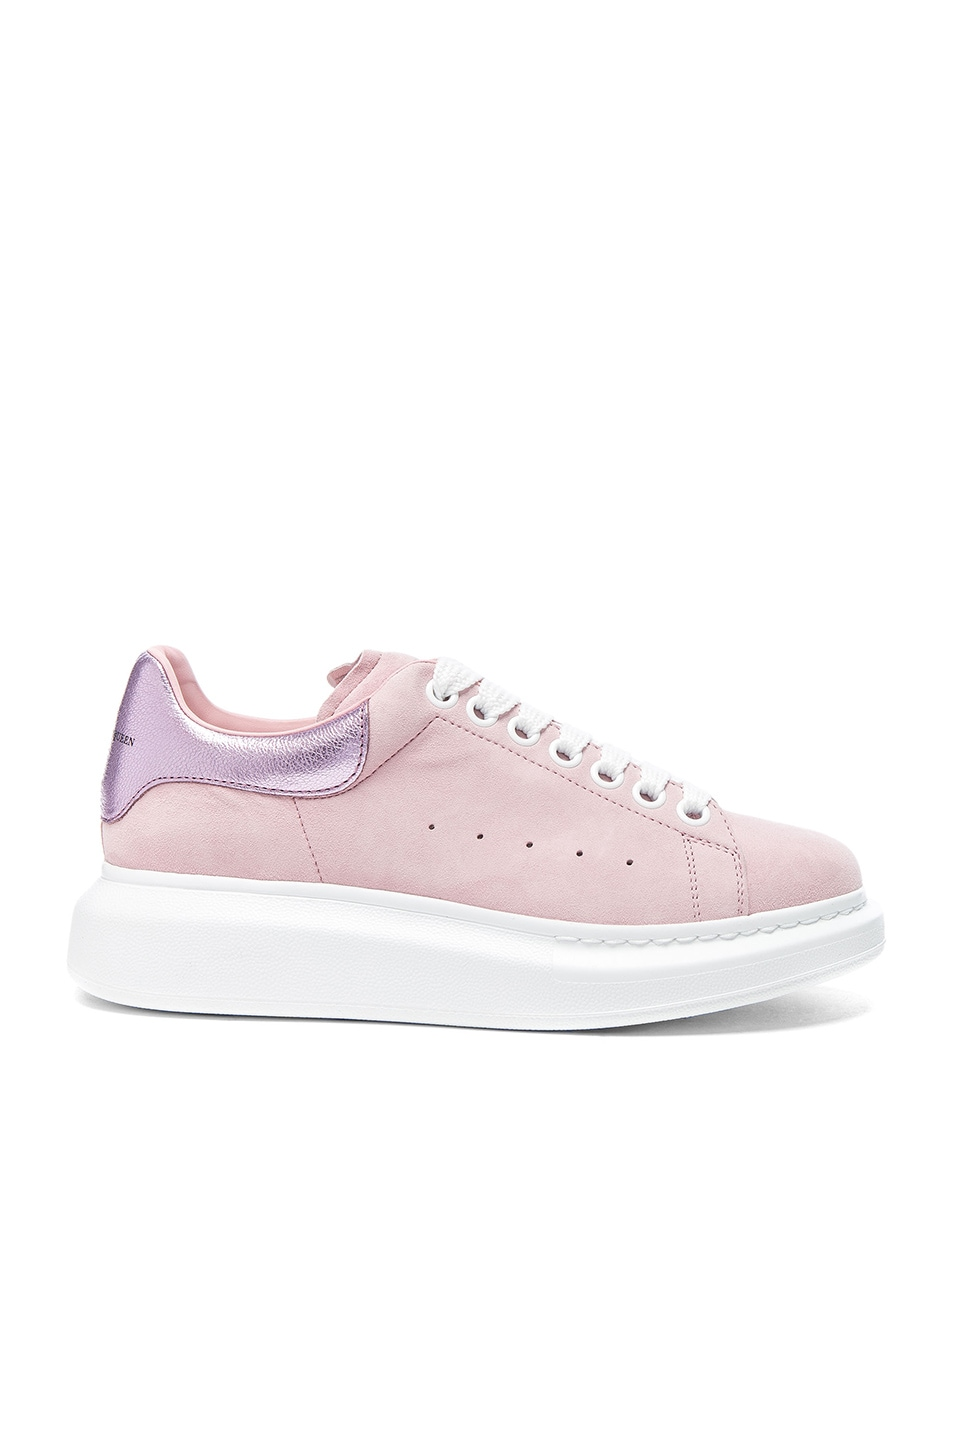 Image 1 of Alexander McQueen Suede Platform Lace Up Sneakers in Clover & Pale Pink